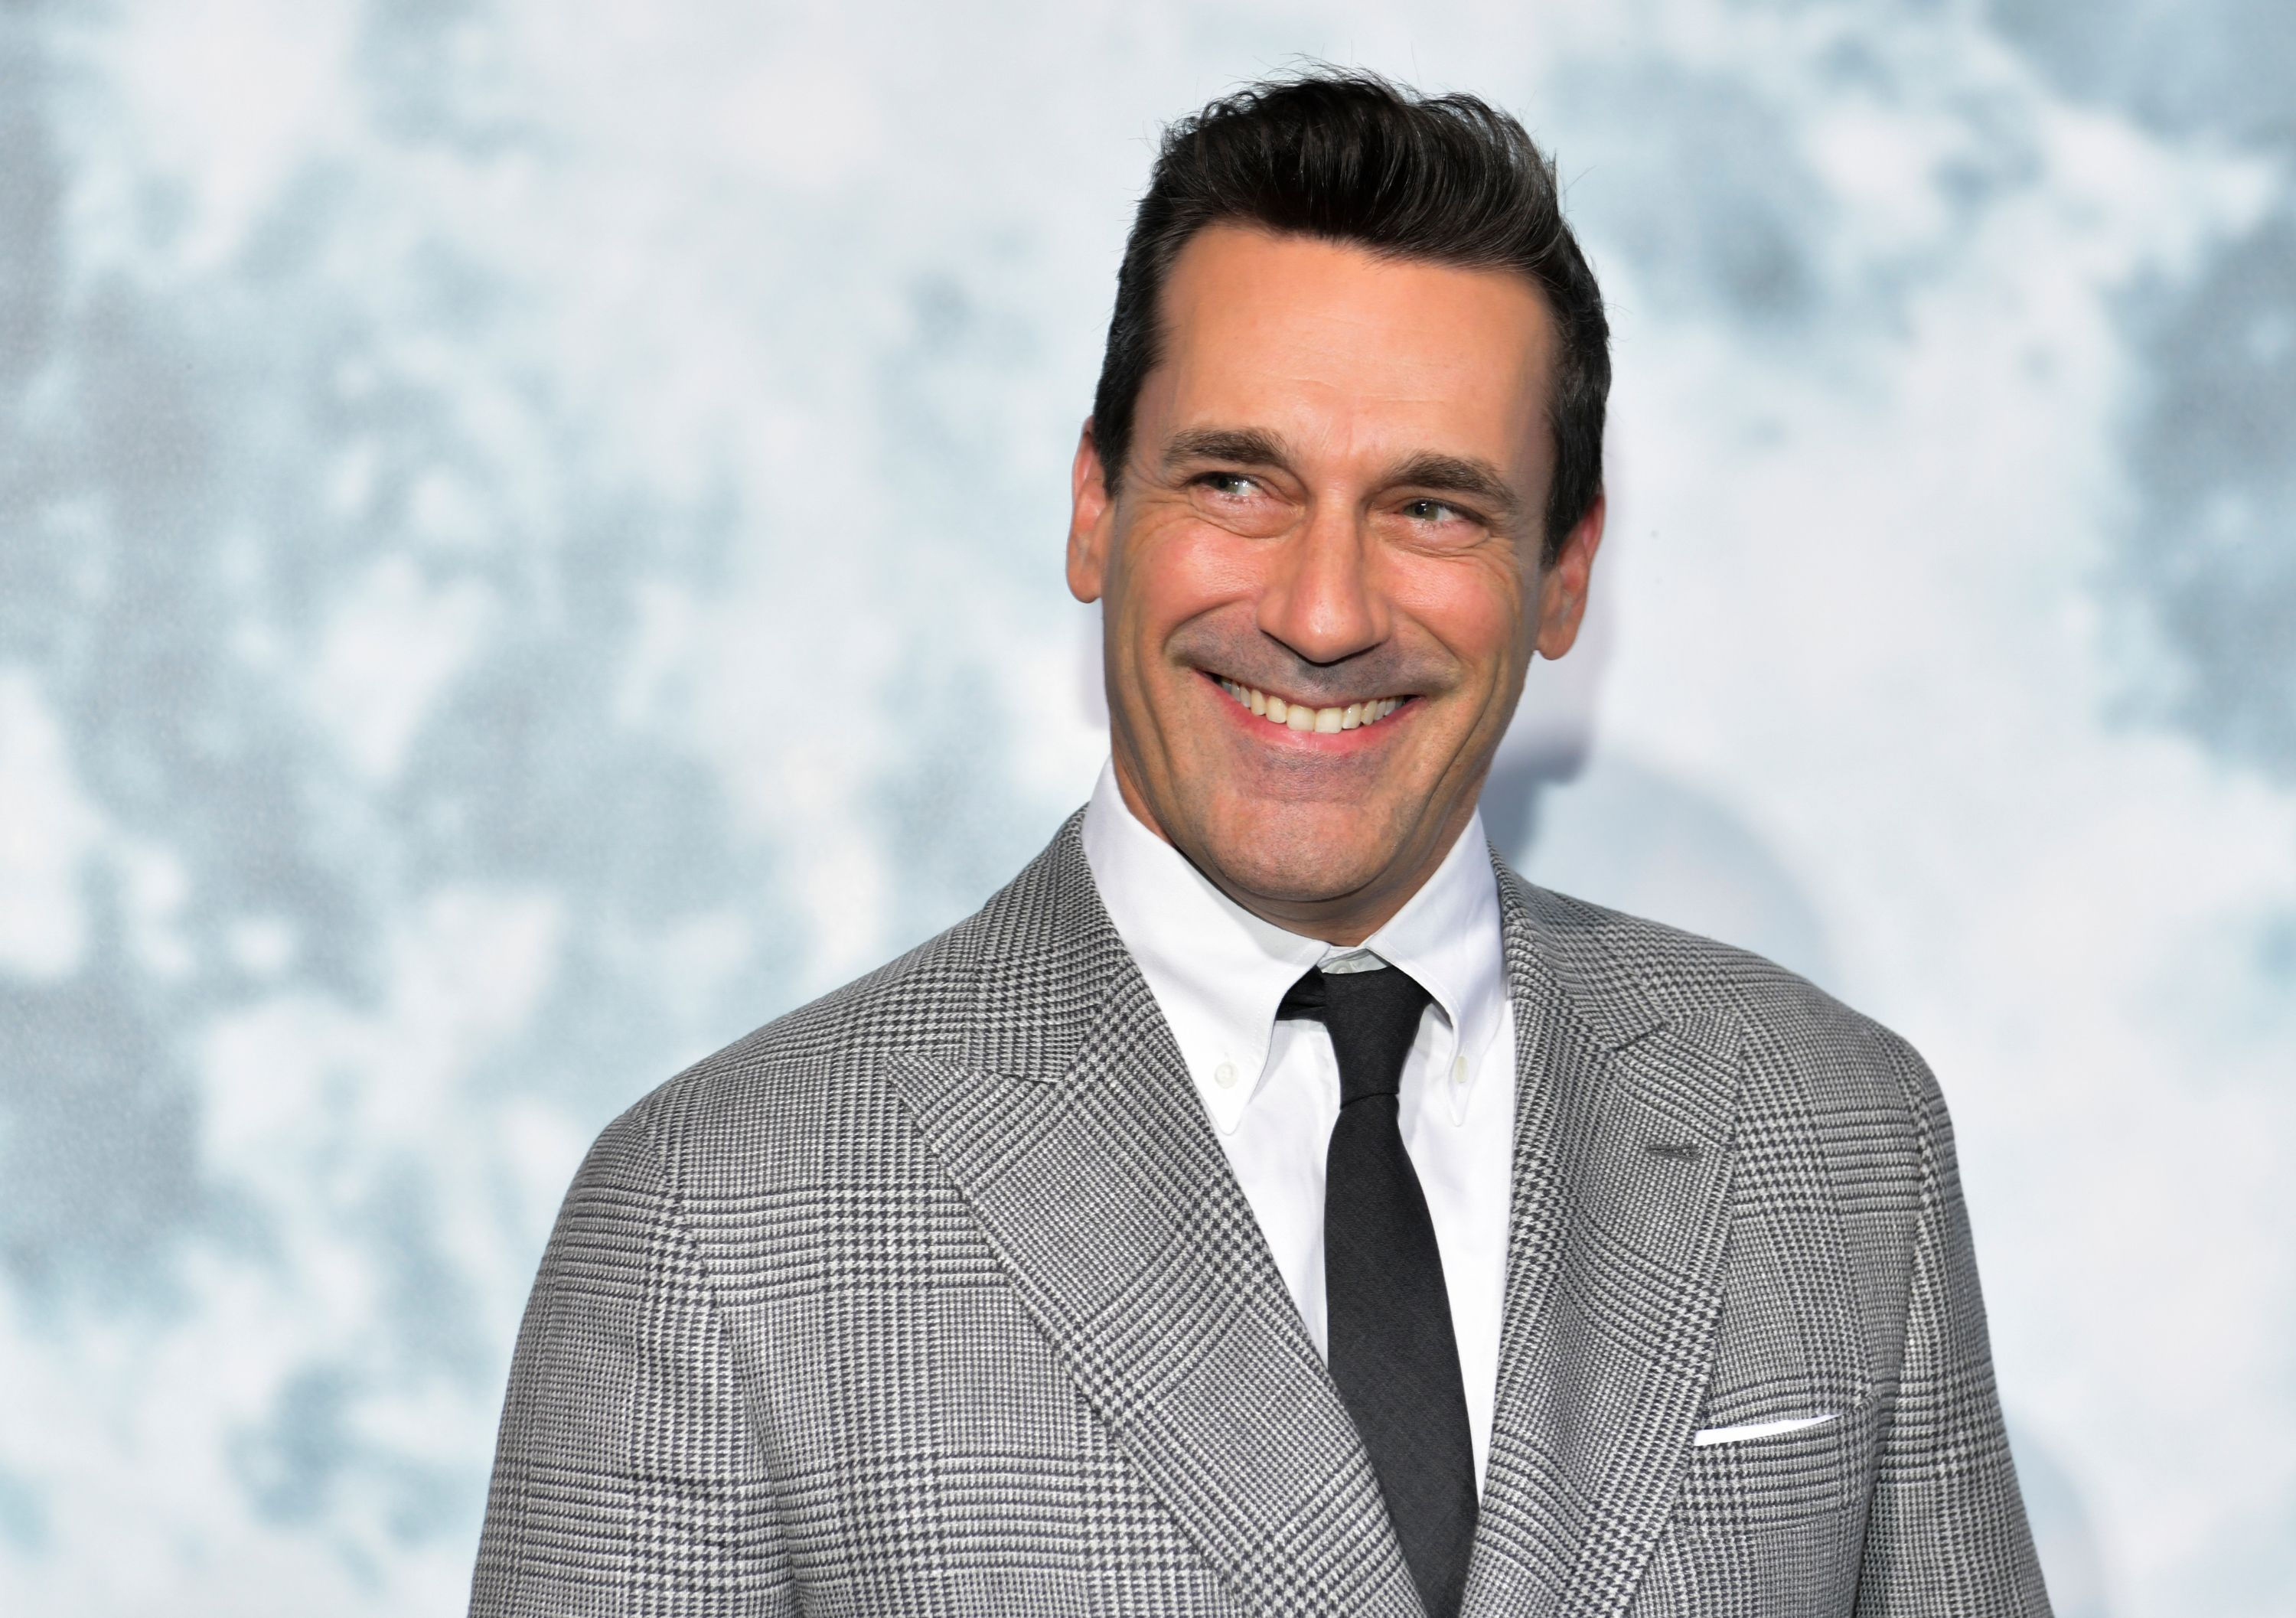 Jon Hamm appears to be dating Anna Osceola, who appeared on 'Mad Men' with him.